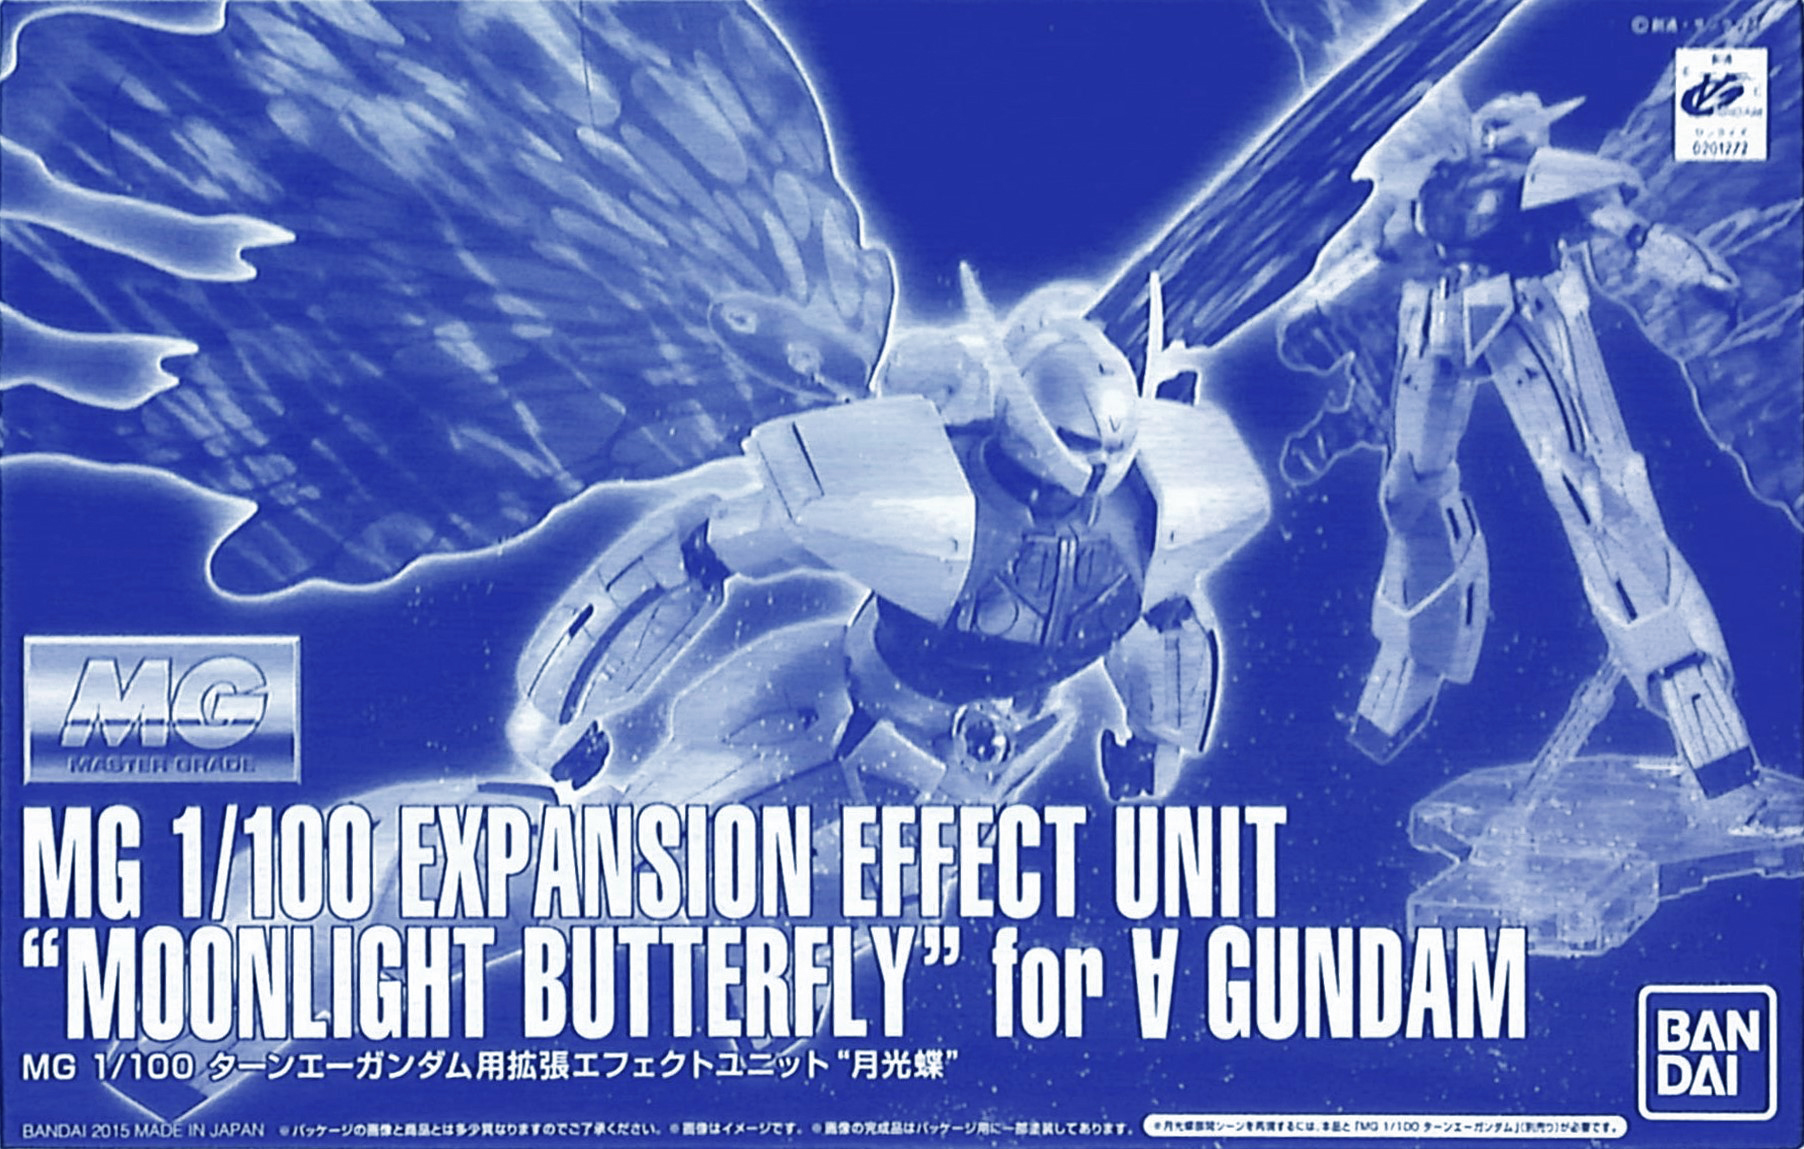 File:MG Expansion Effect Unit Moonlight Butterfly for ∀ Gundam.jpg